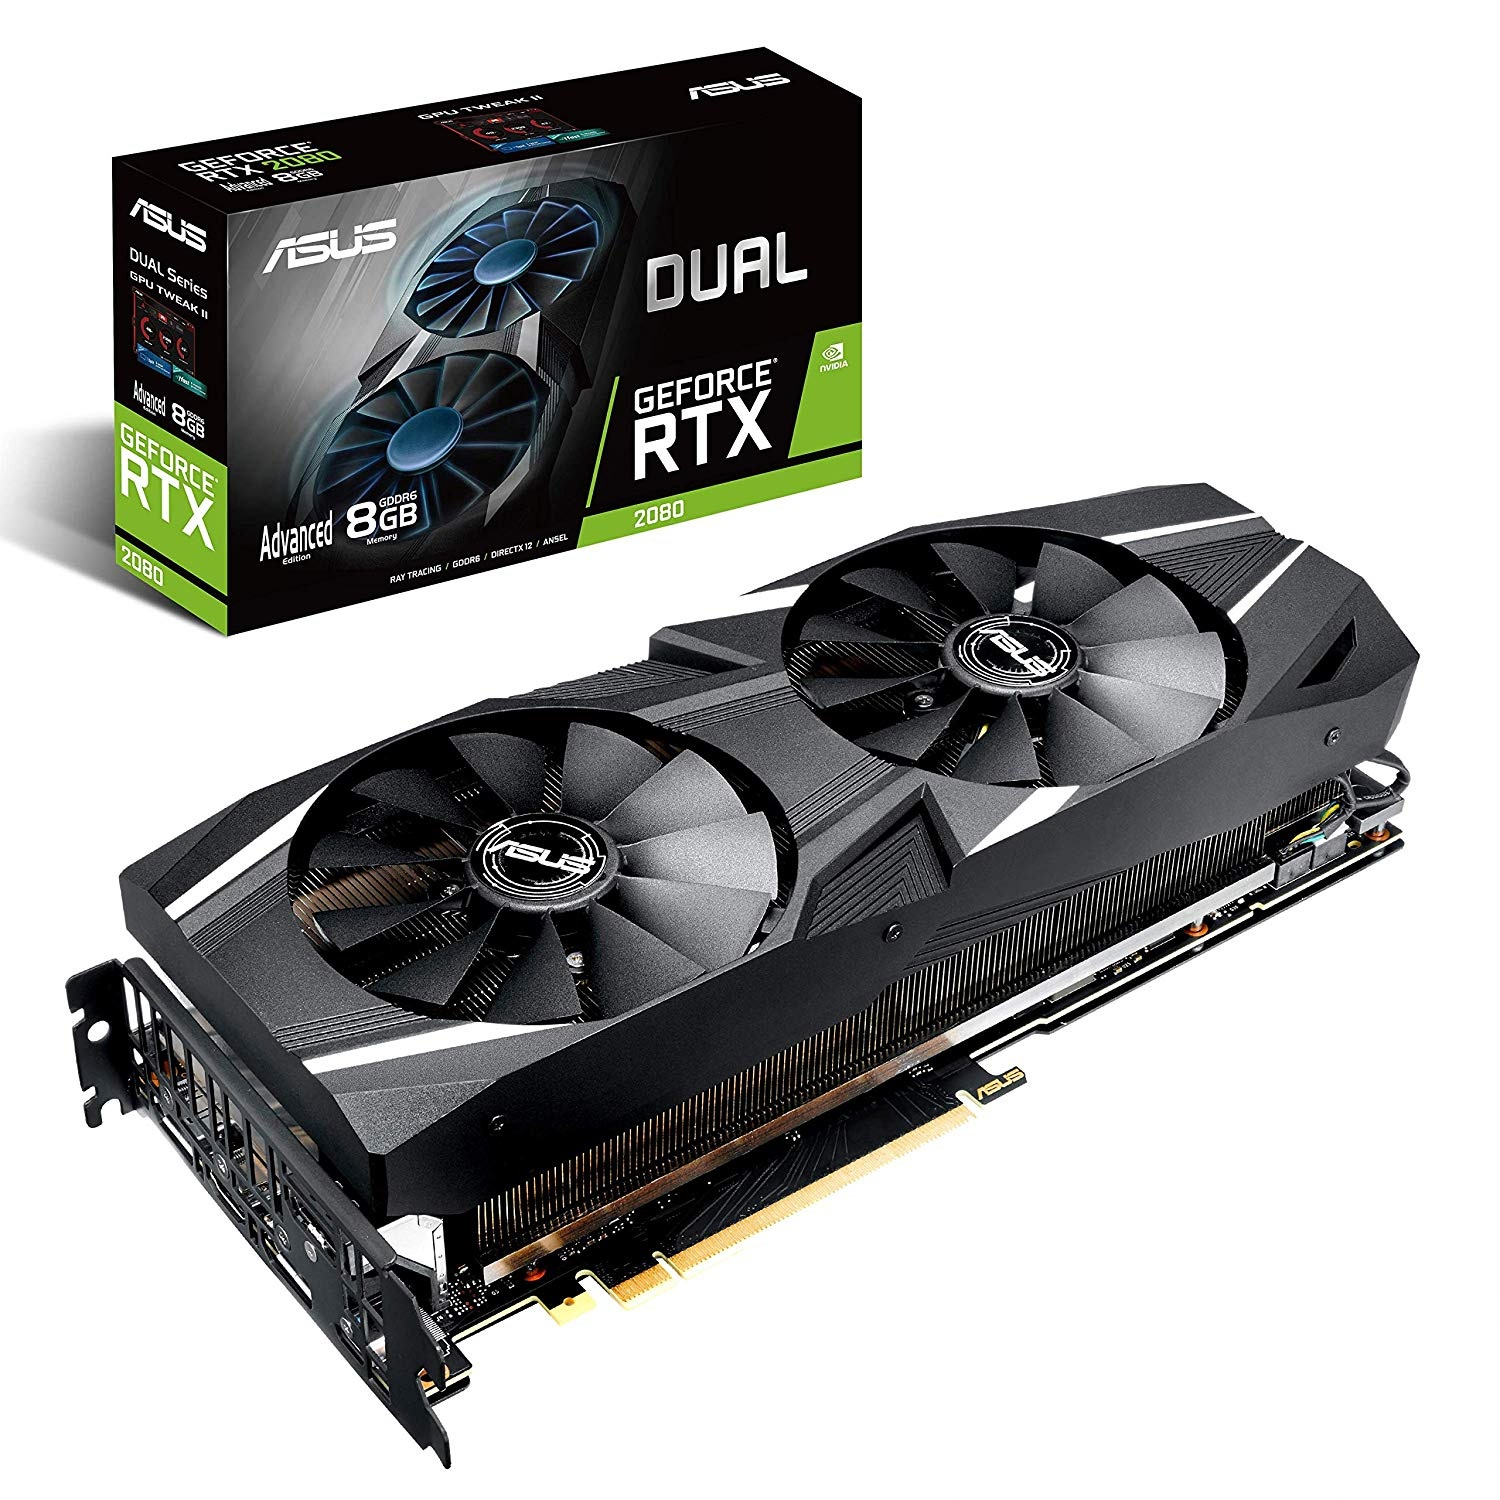 ASUS RTX 2080 DUAL ADVANCED 8GB DDR6